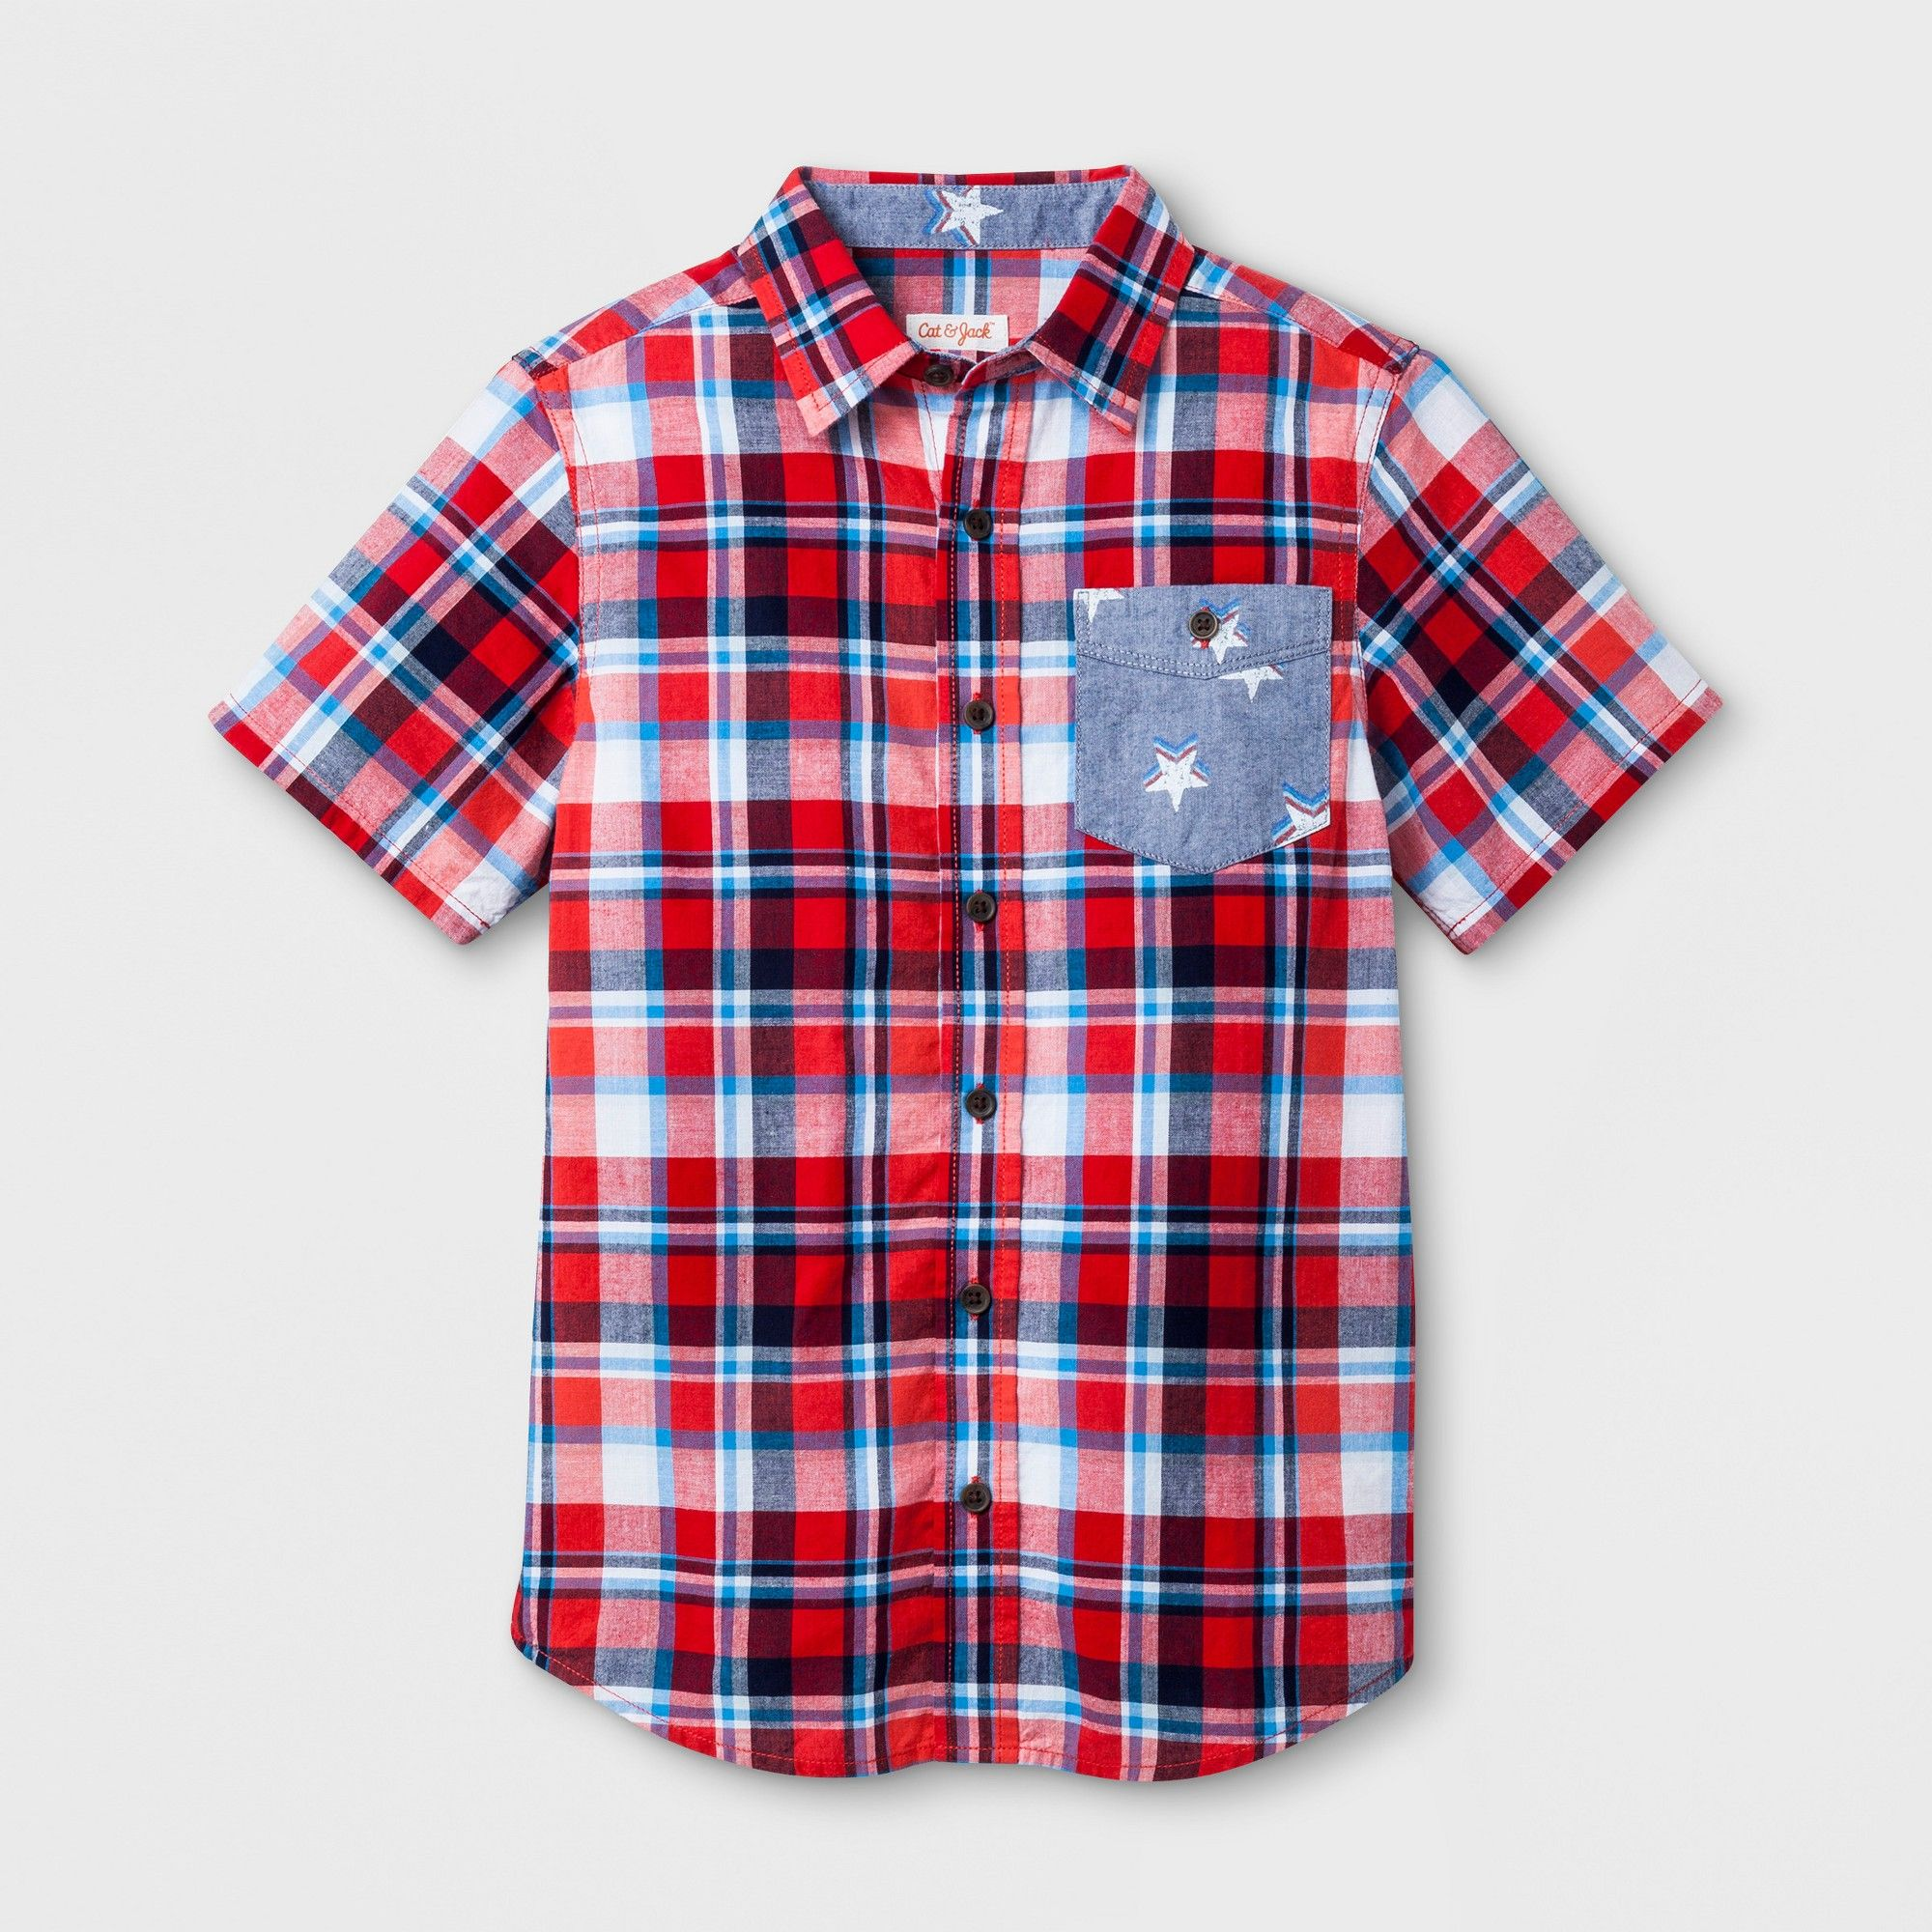 ad0272b8 Boys' Short Sleeve Button-Down Shirt - Cat & Jack Red/White/Blue XS, Pink